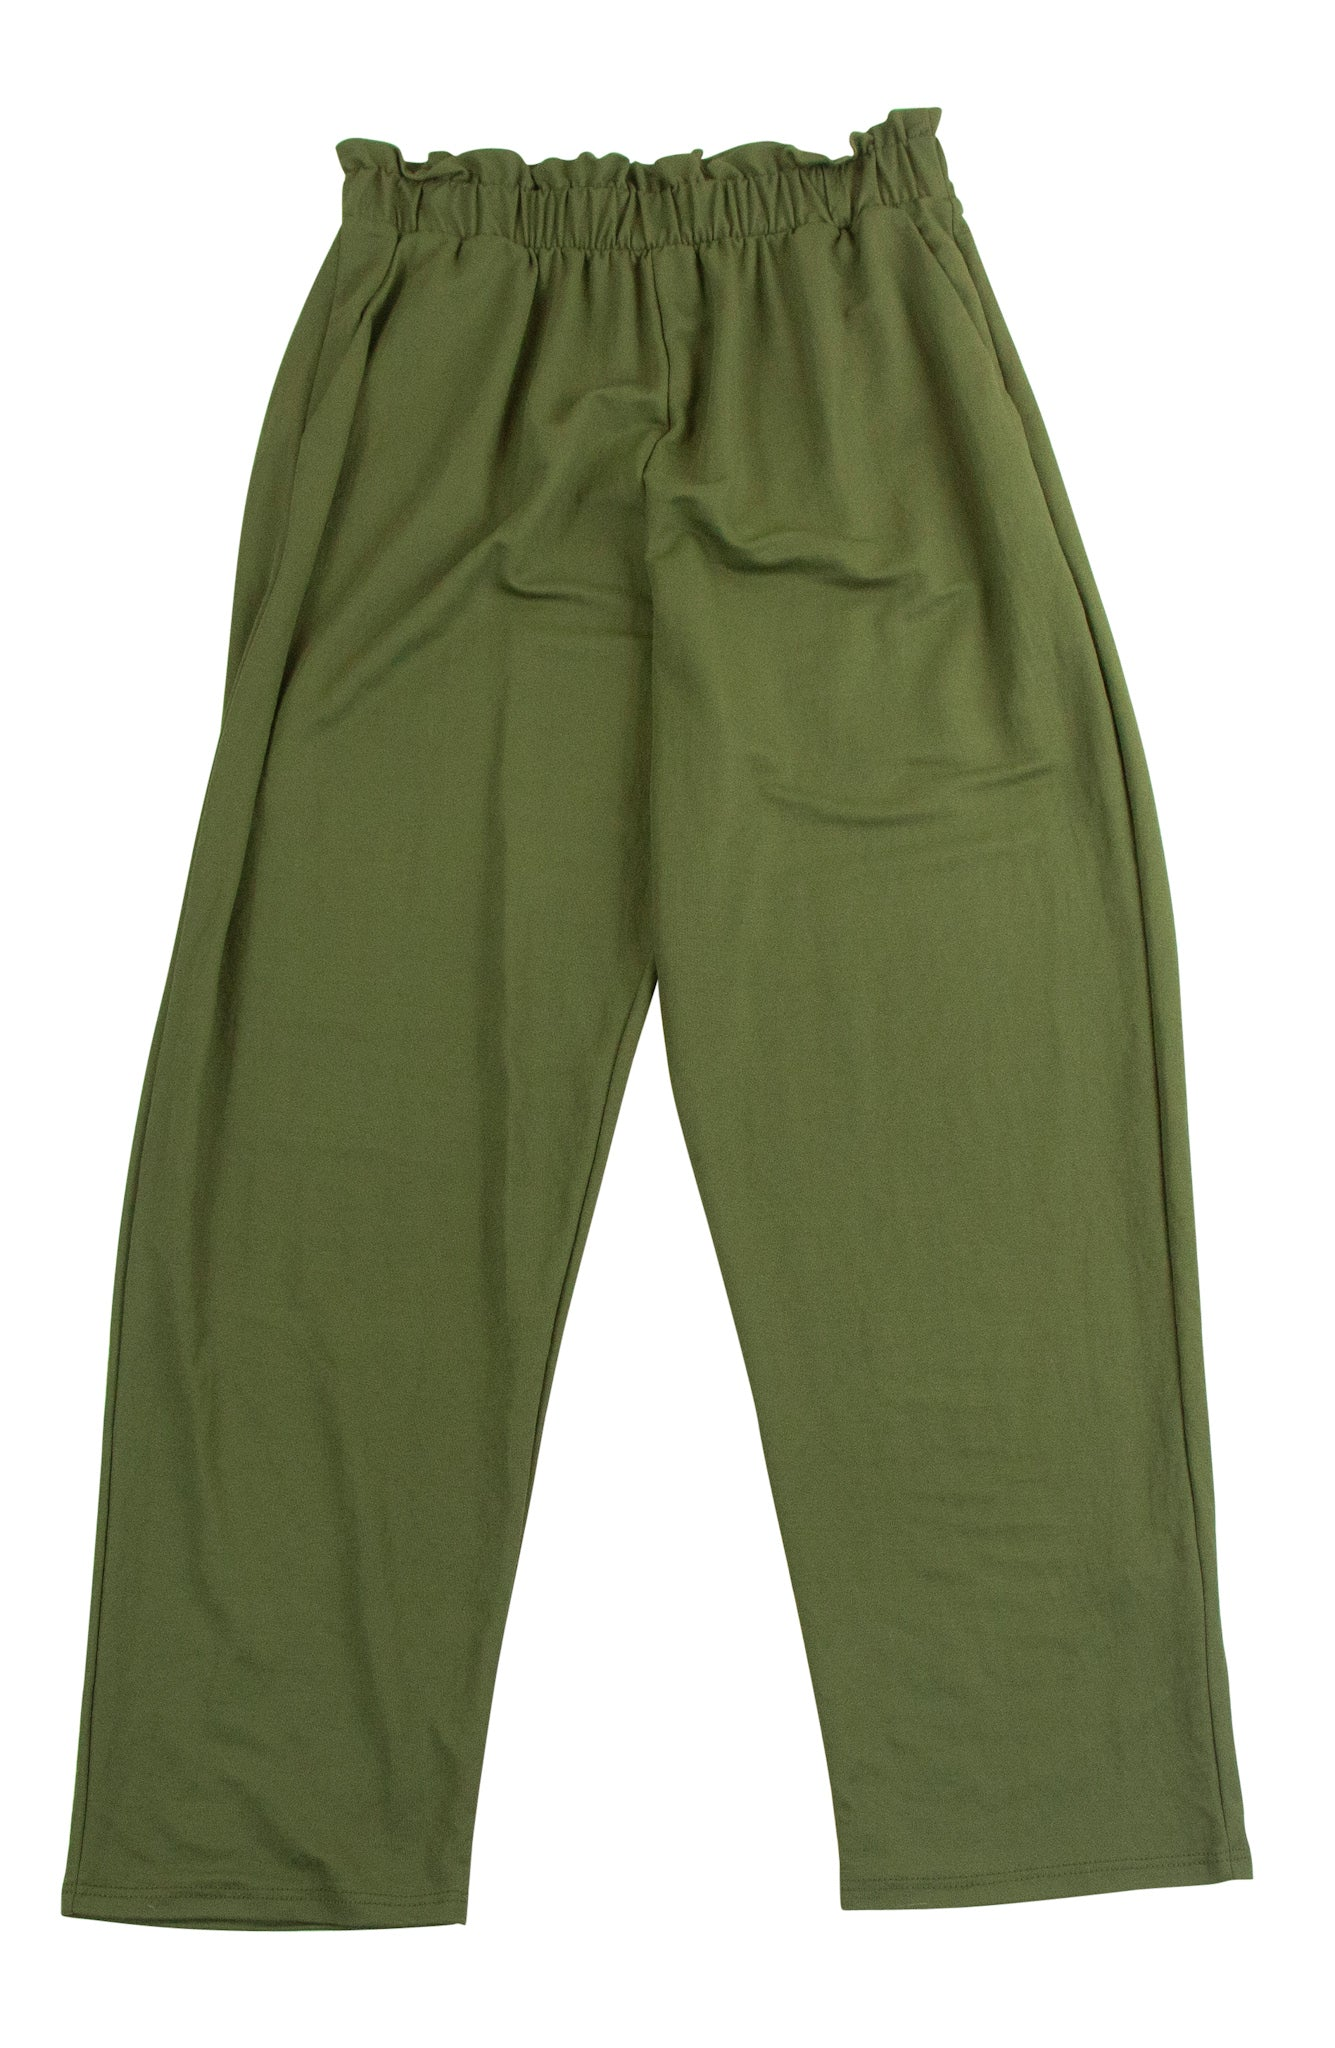 Best Life Pants in Dark Green